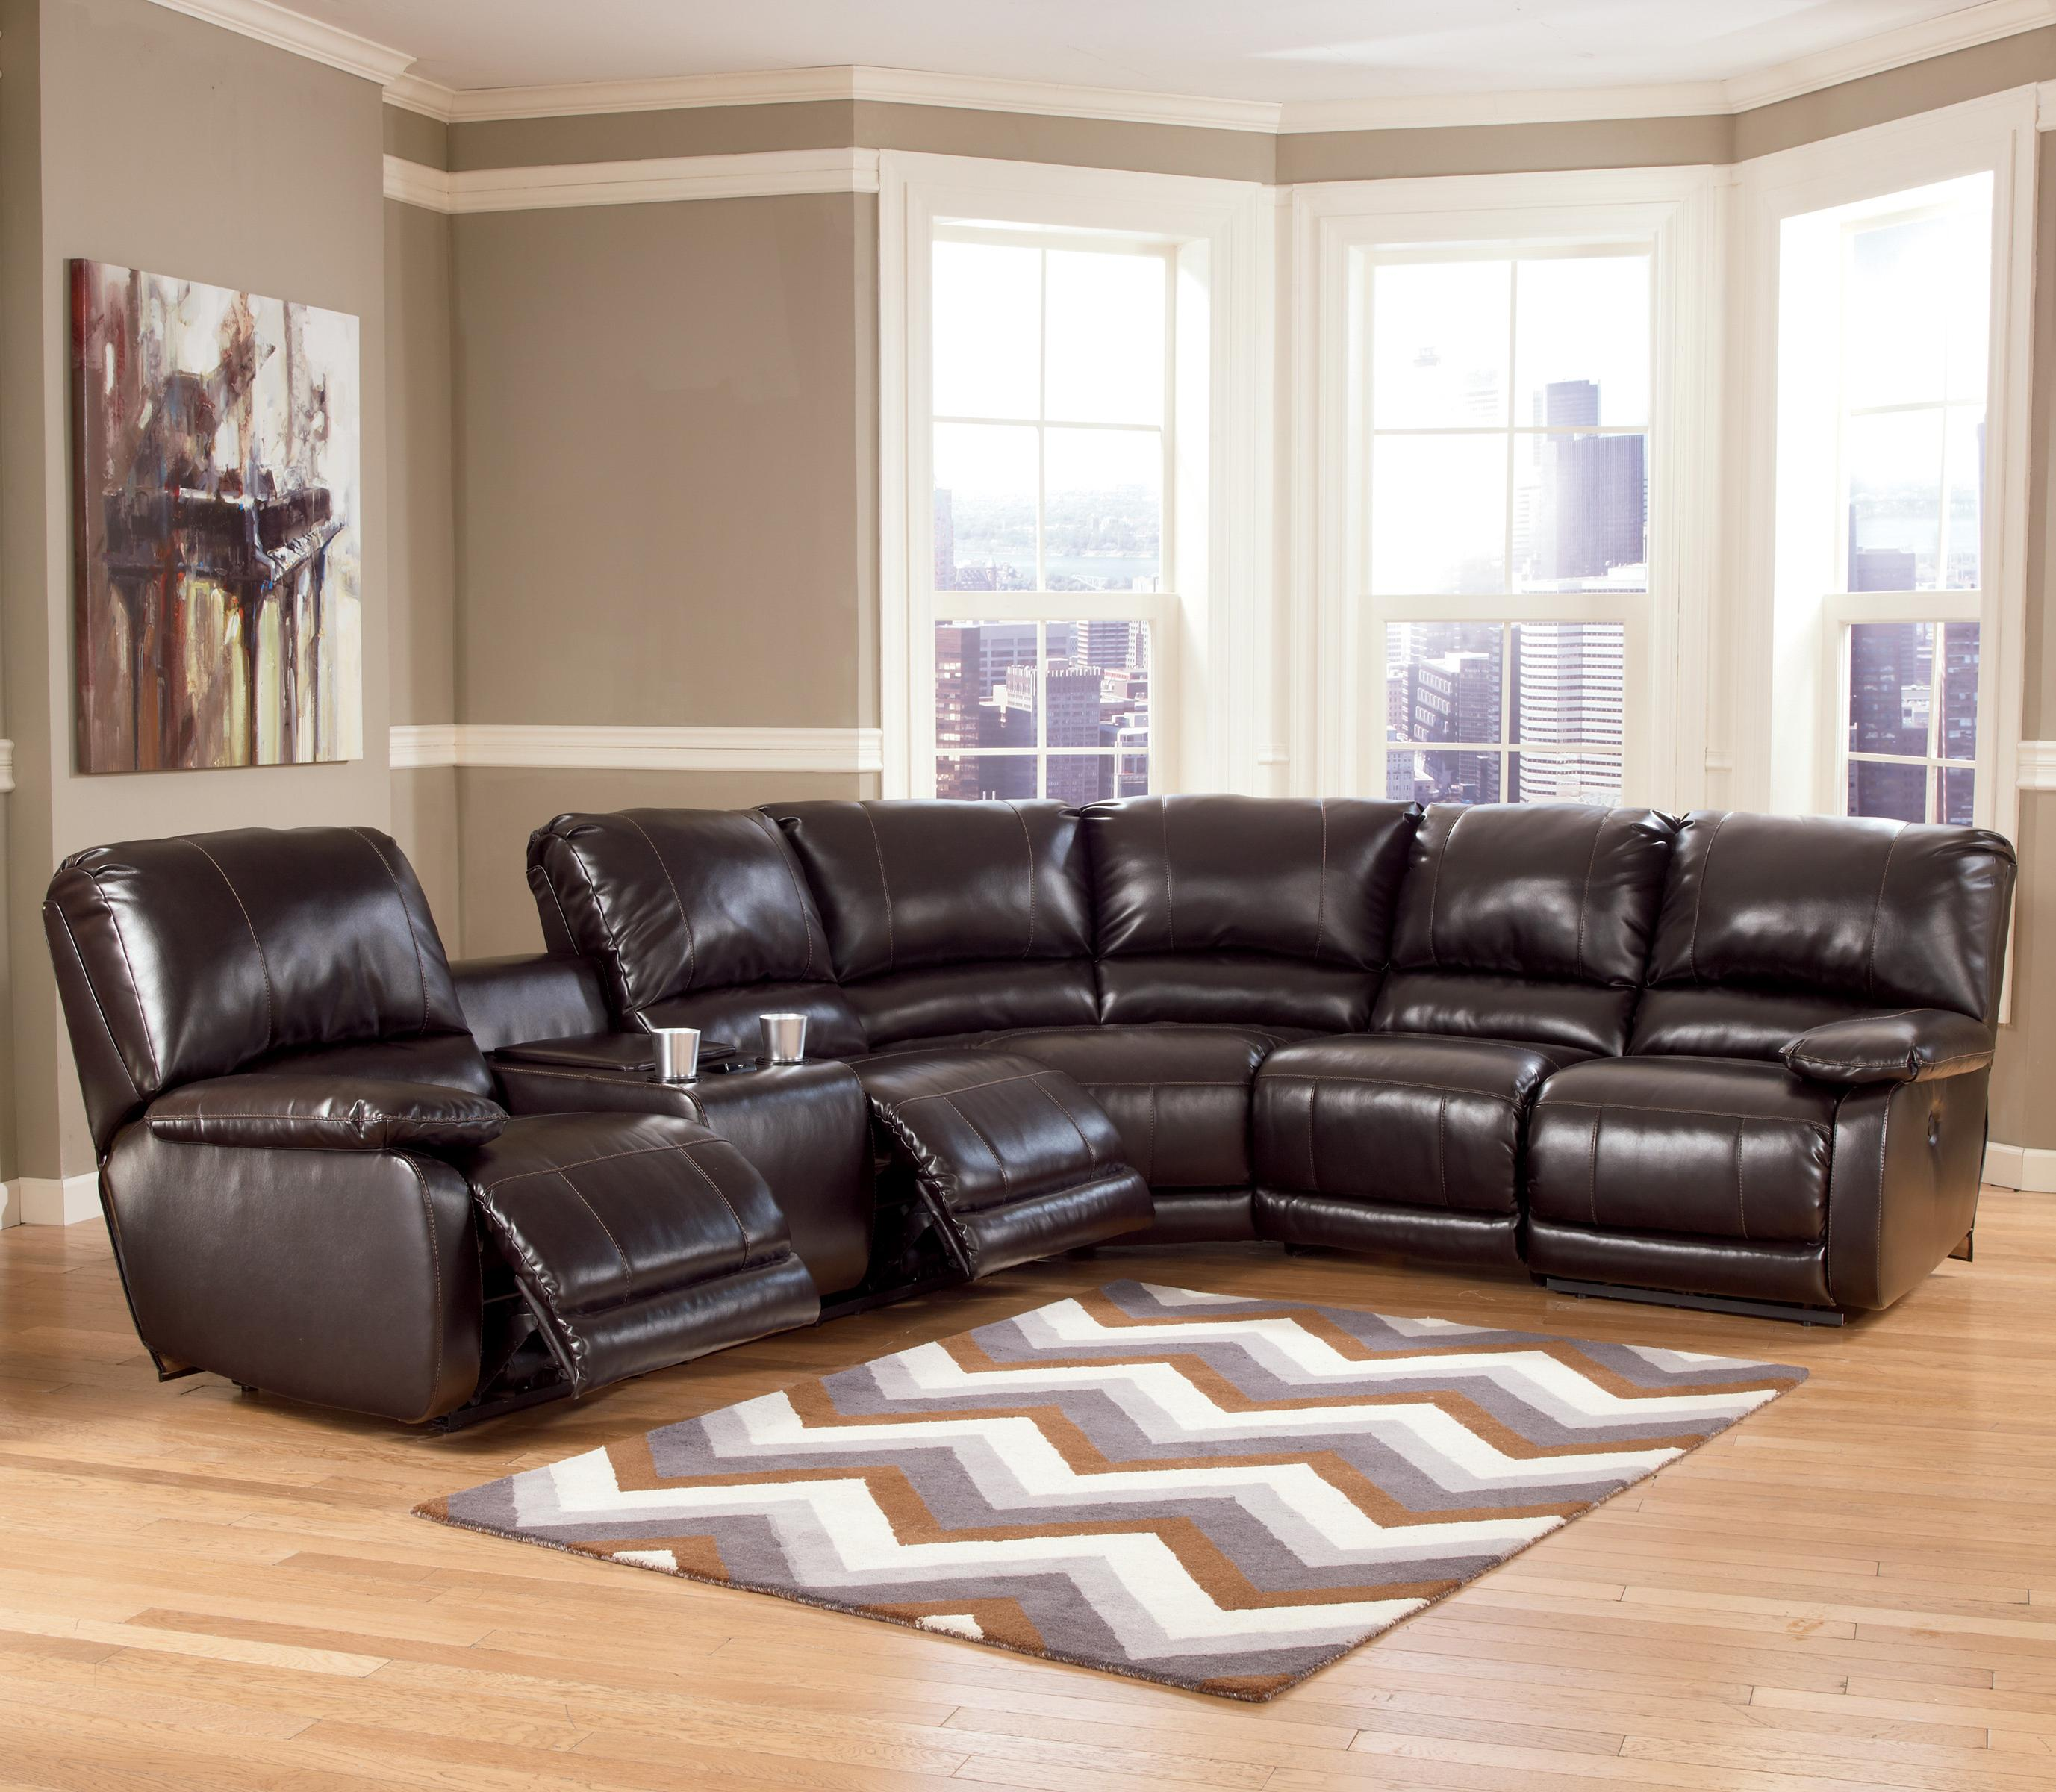 Signature Design by Ashley Capote DuraBlend® - Chocolate Power Reclining Sectional - Item Number: 4450001+77+46+62